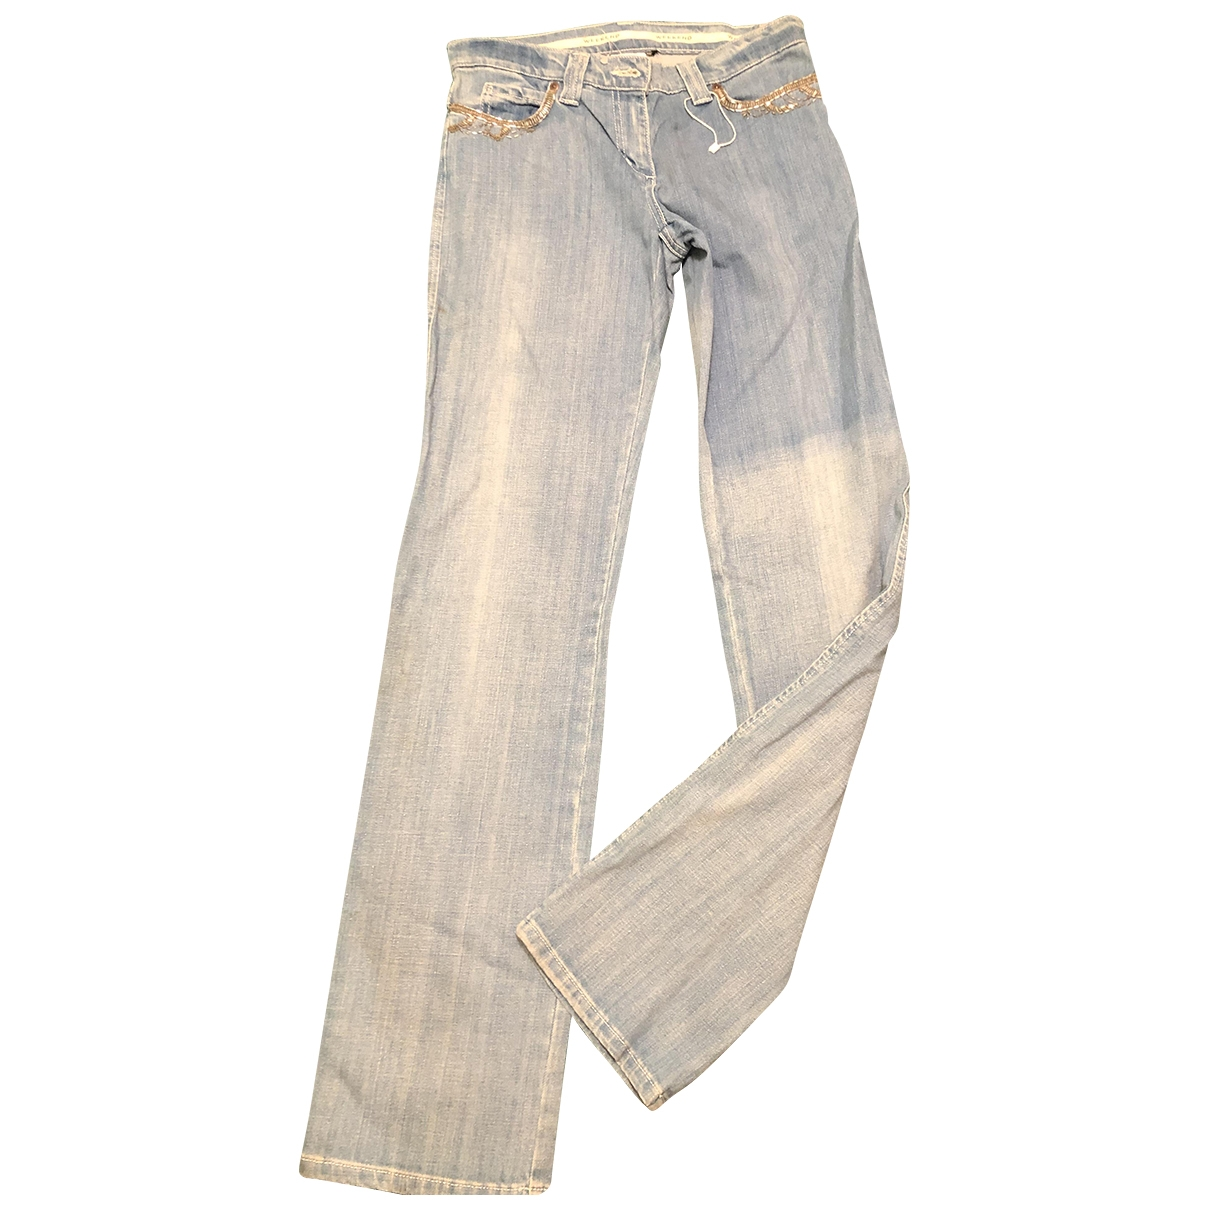 Max Mara Weekend \N Blue Denim - Jeans Trousers for Women 38 IT